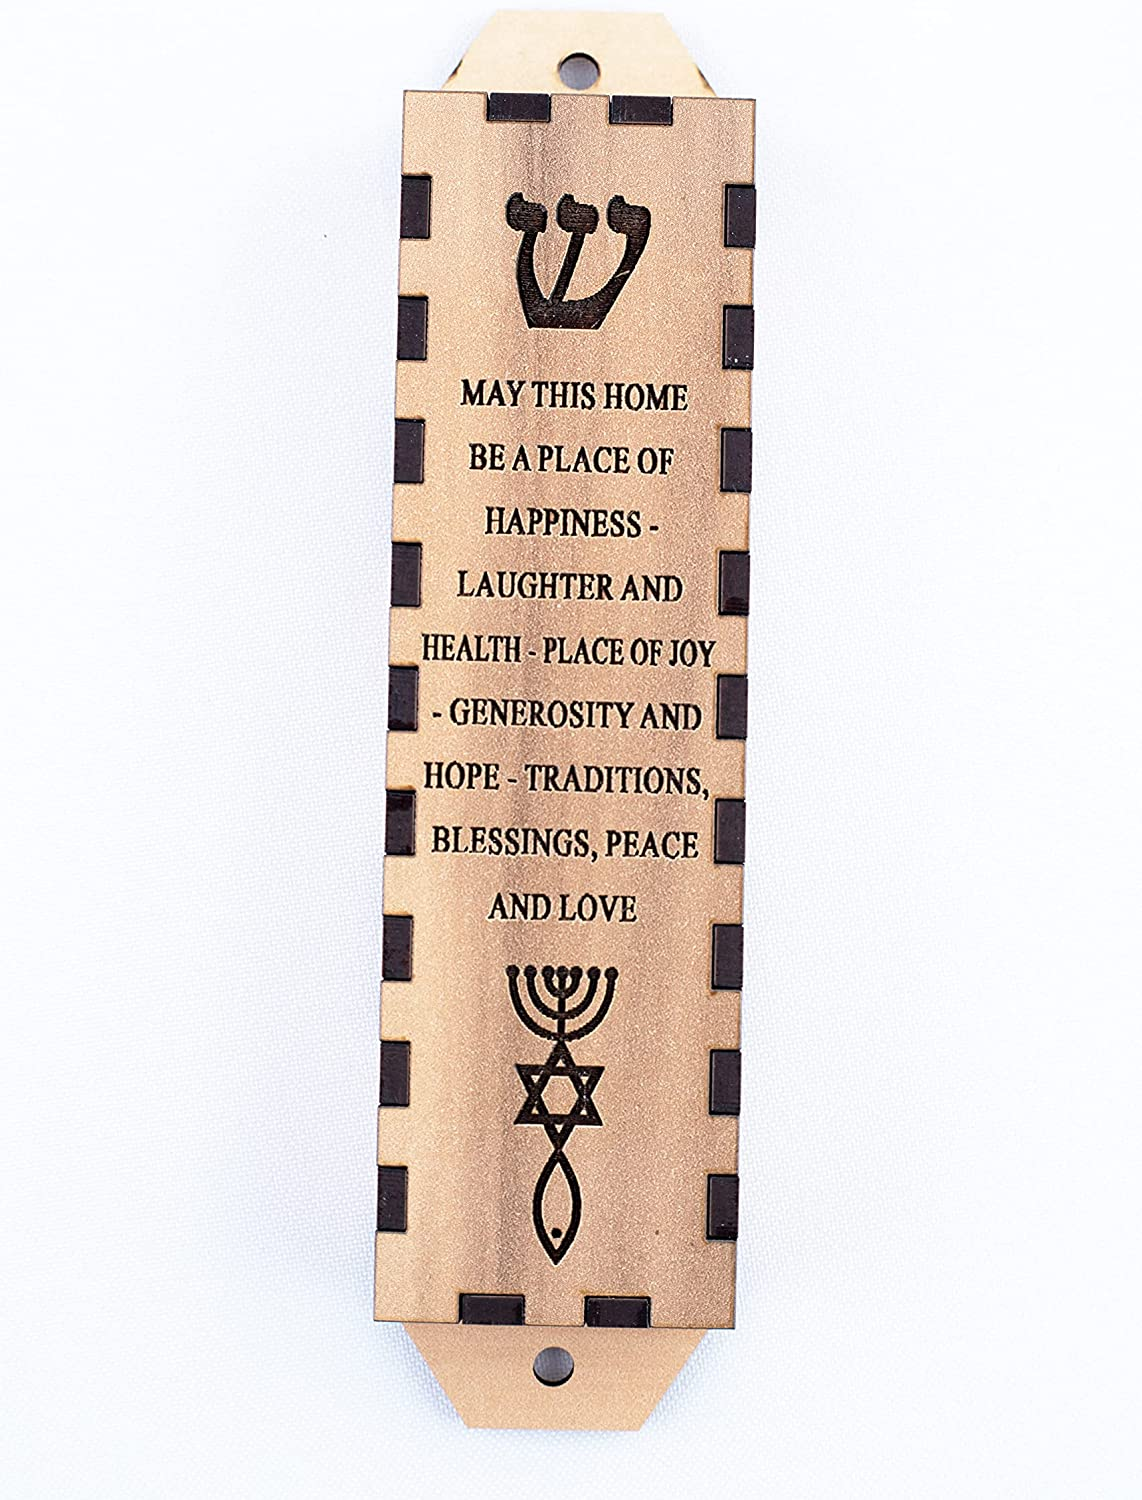 Olive Wood Gifts Shop Handcrafted Home Prayer 'Mezuzah' (5.7 Inch/English), Door Hanging with Laser Engraving of Hebrew Letter 'SHIN' & Messianic Seal on Wooden Blocks & Scroll, from Israel